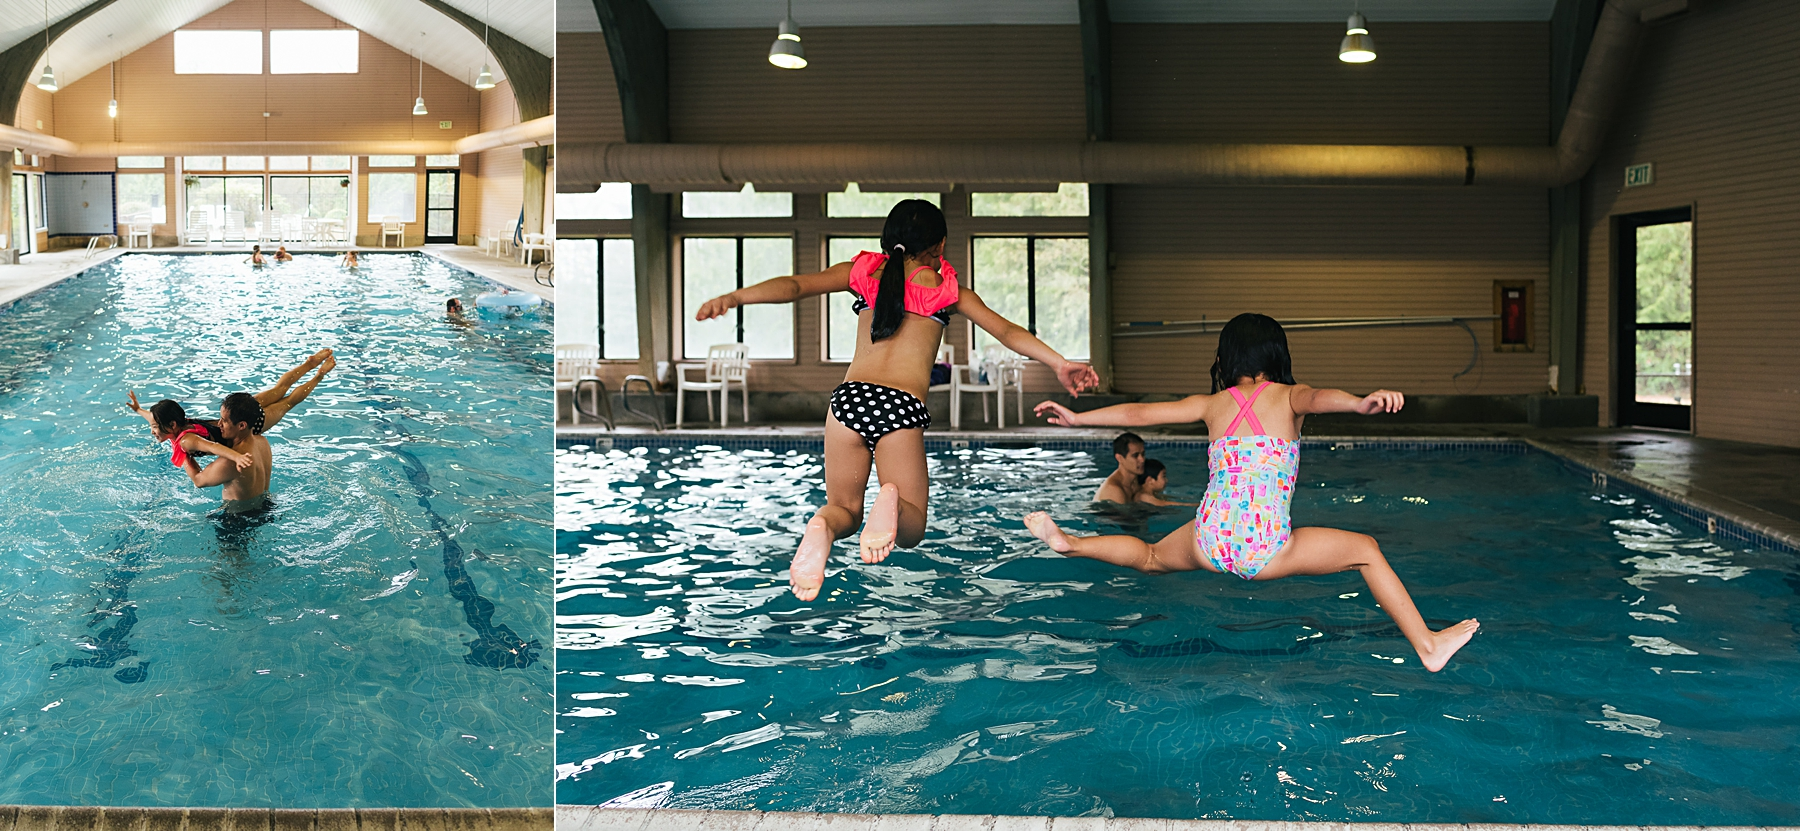 kids playing in indoor pool